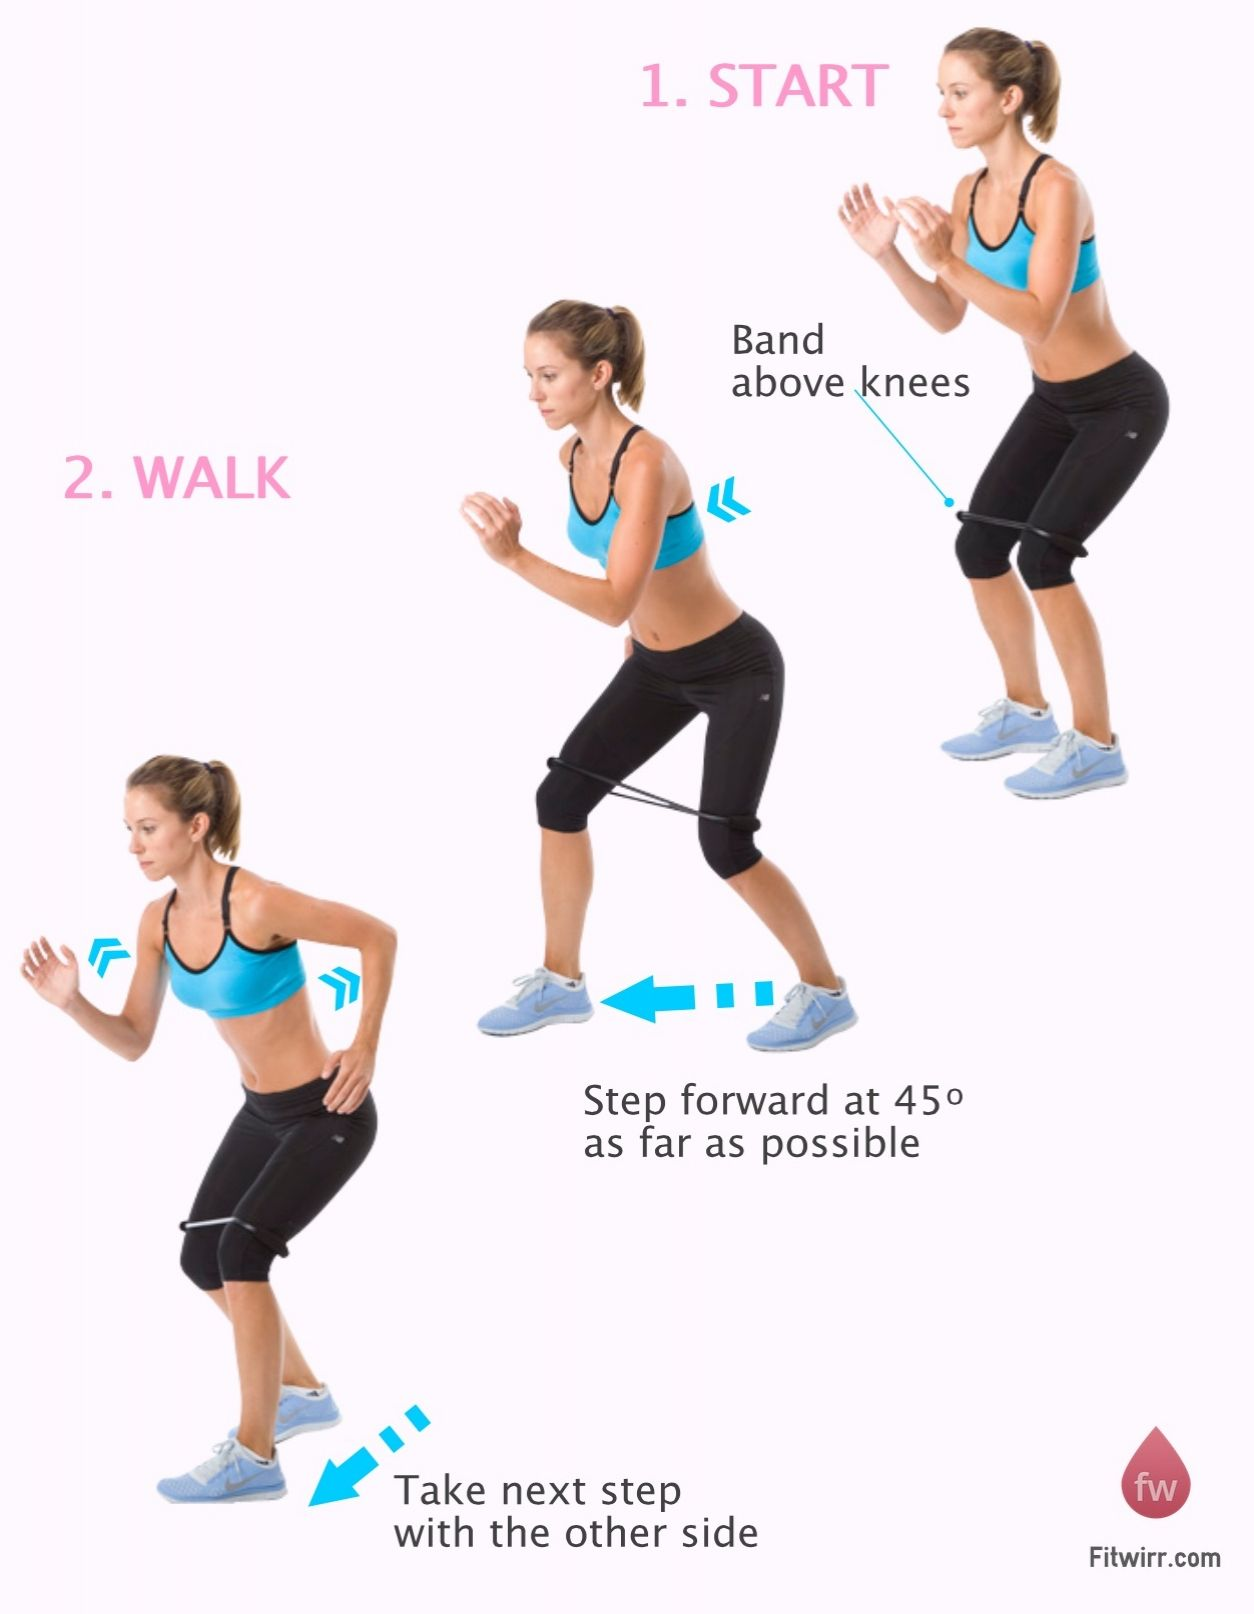 c228c3ca002 Mini-band walk is a warm up exercise that works the muscles outside of your  hips. It also improves hip stability and strengthens the knee joint.